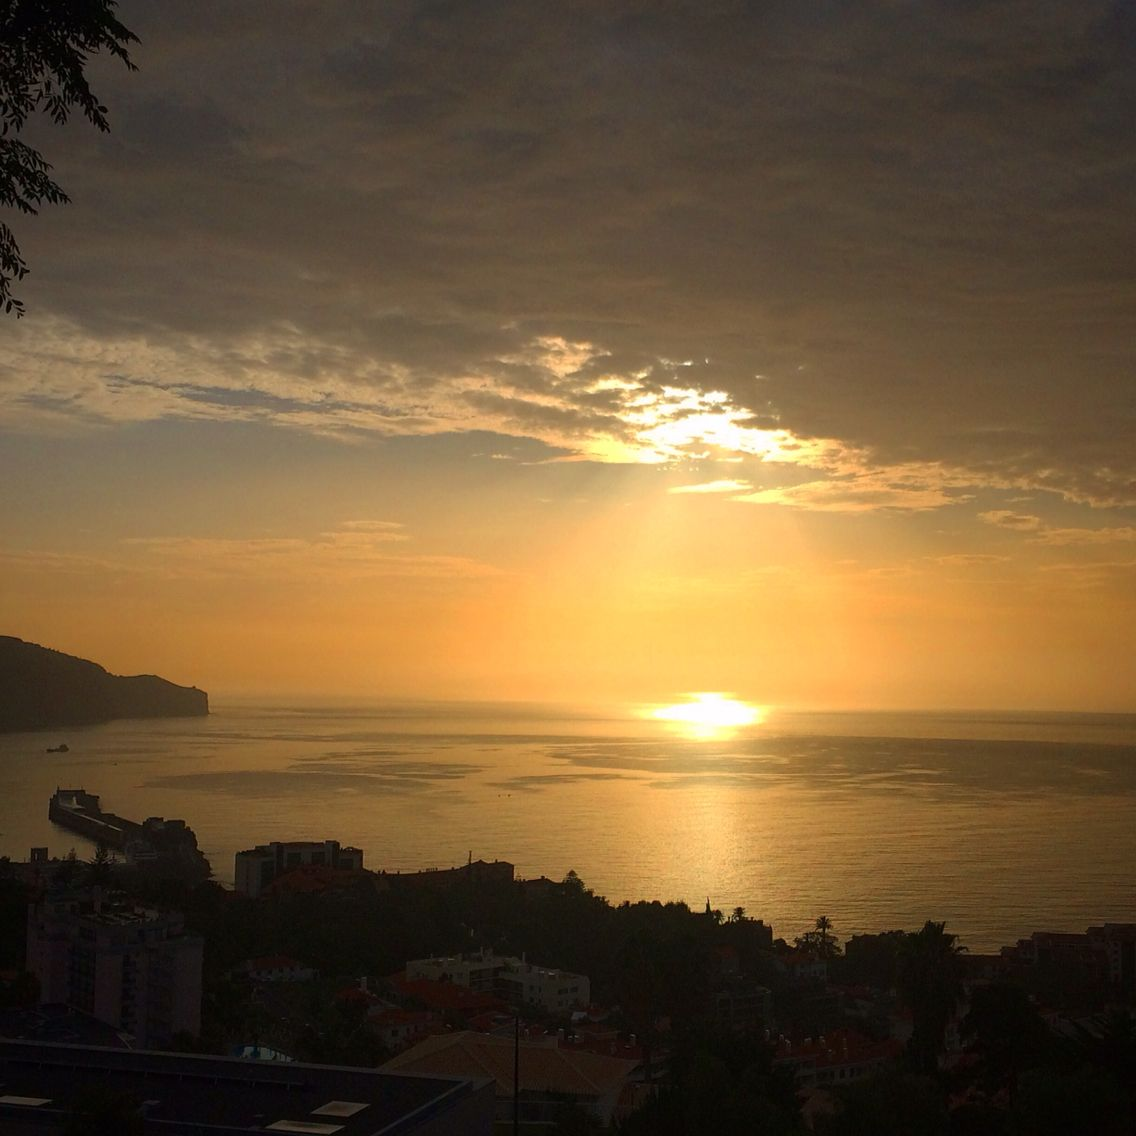 Nascer do sol na Madeira #madeiraisland #beautifuldestination Photo: Bordal